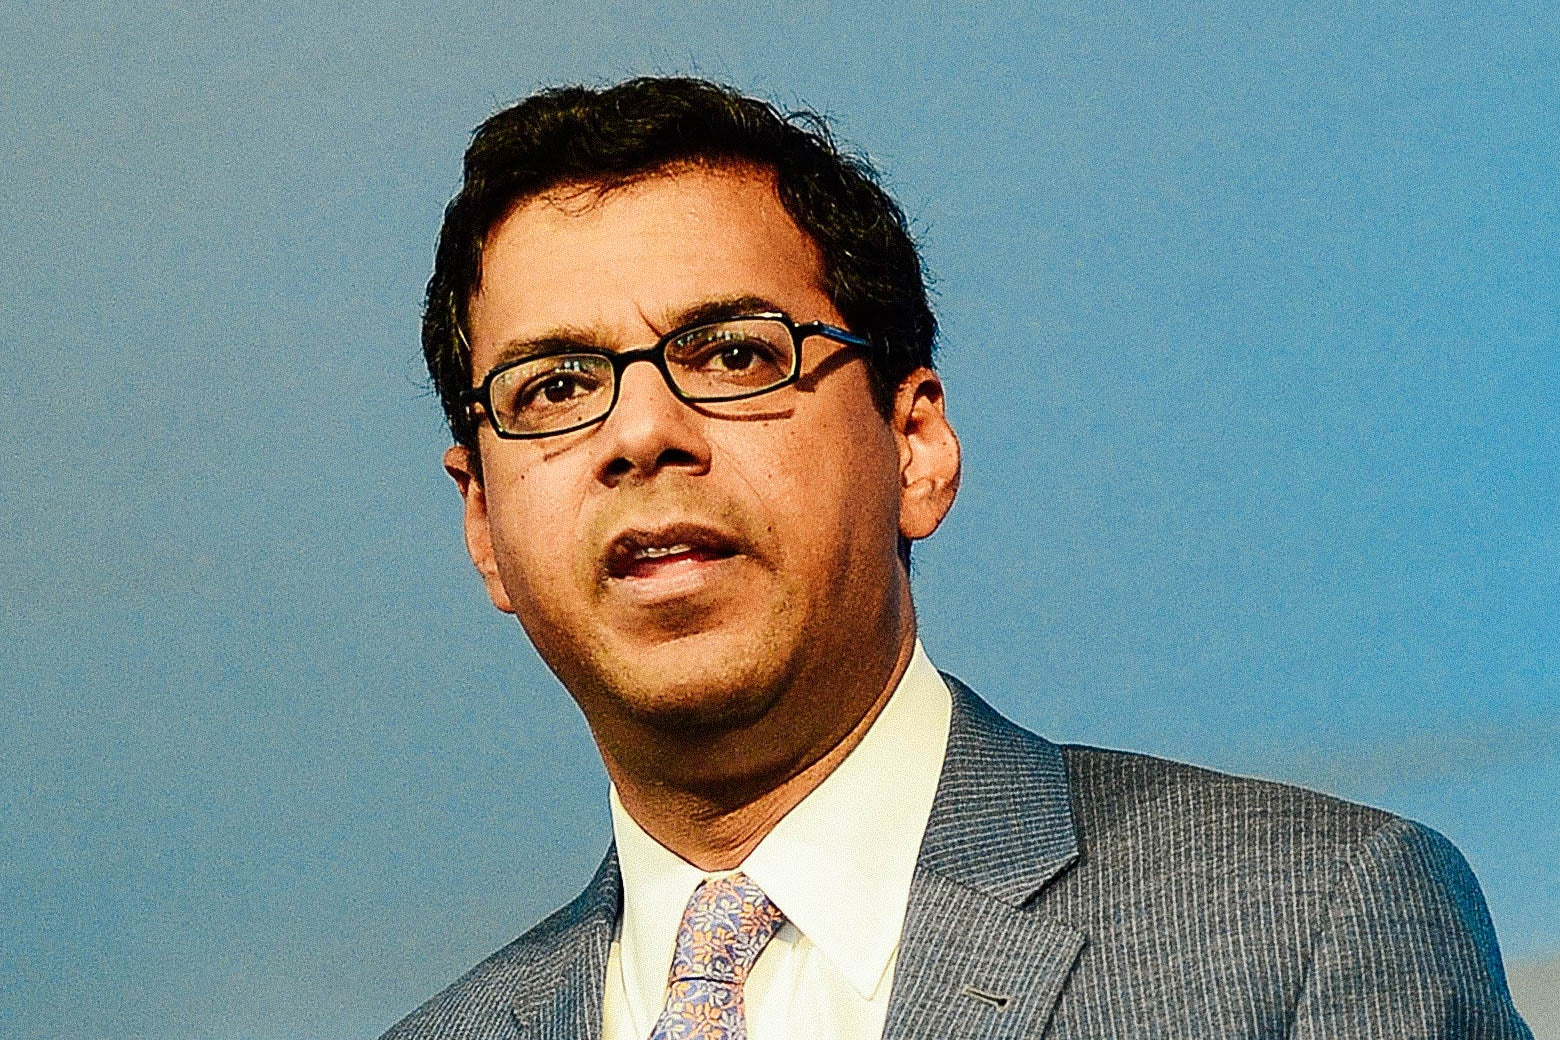 Professor Atul Gawande, M.D. delivers speech during Geisinger Health System A Century of Transformation and Innovation Symposium at Pine Barn Inn on September 25, 2015 in Danville, Pennsylvania.